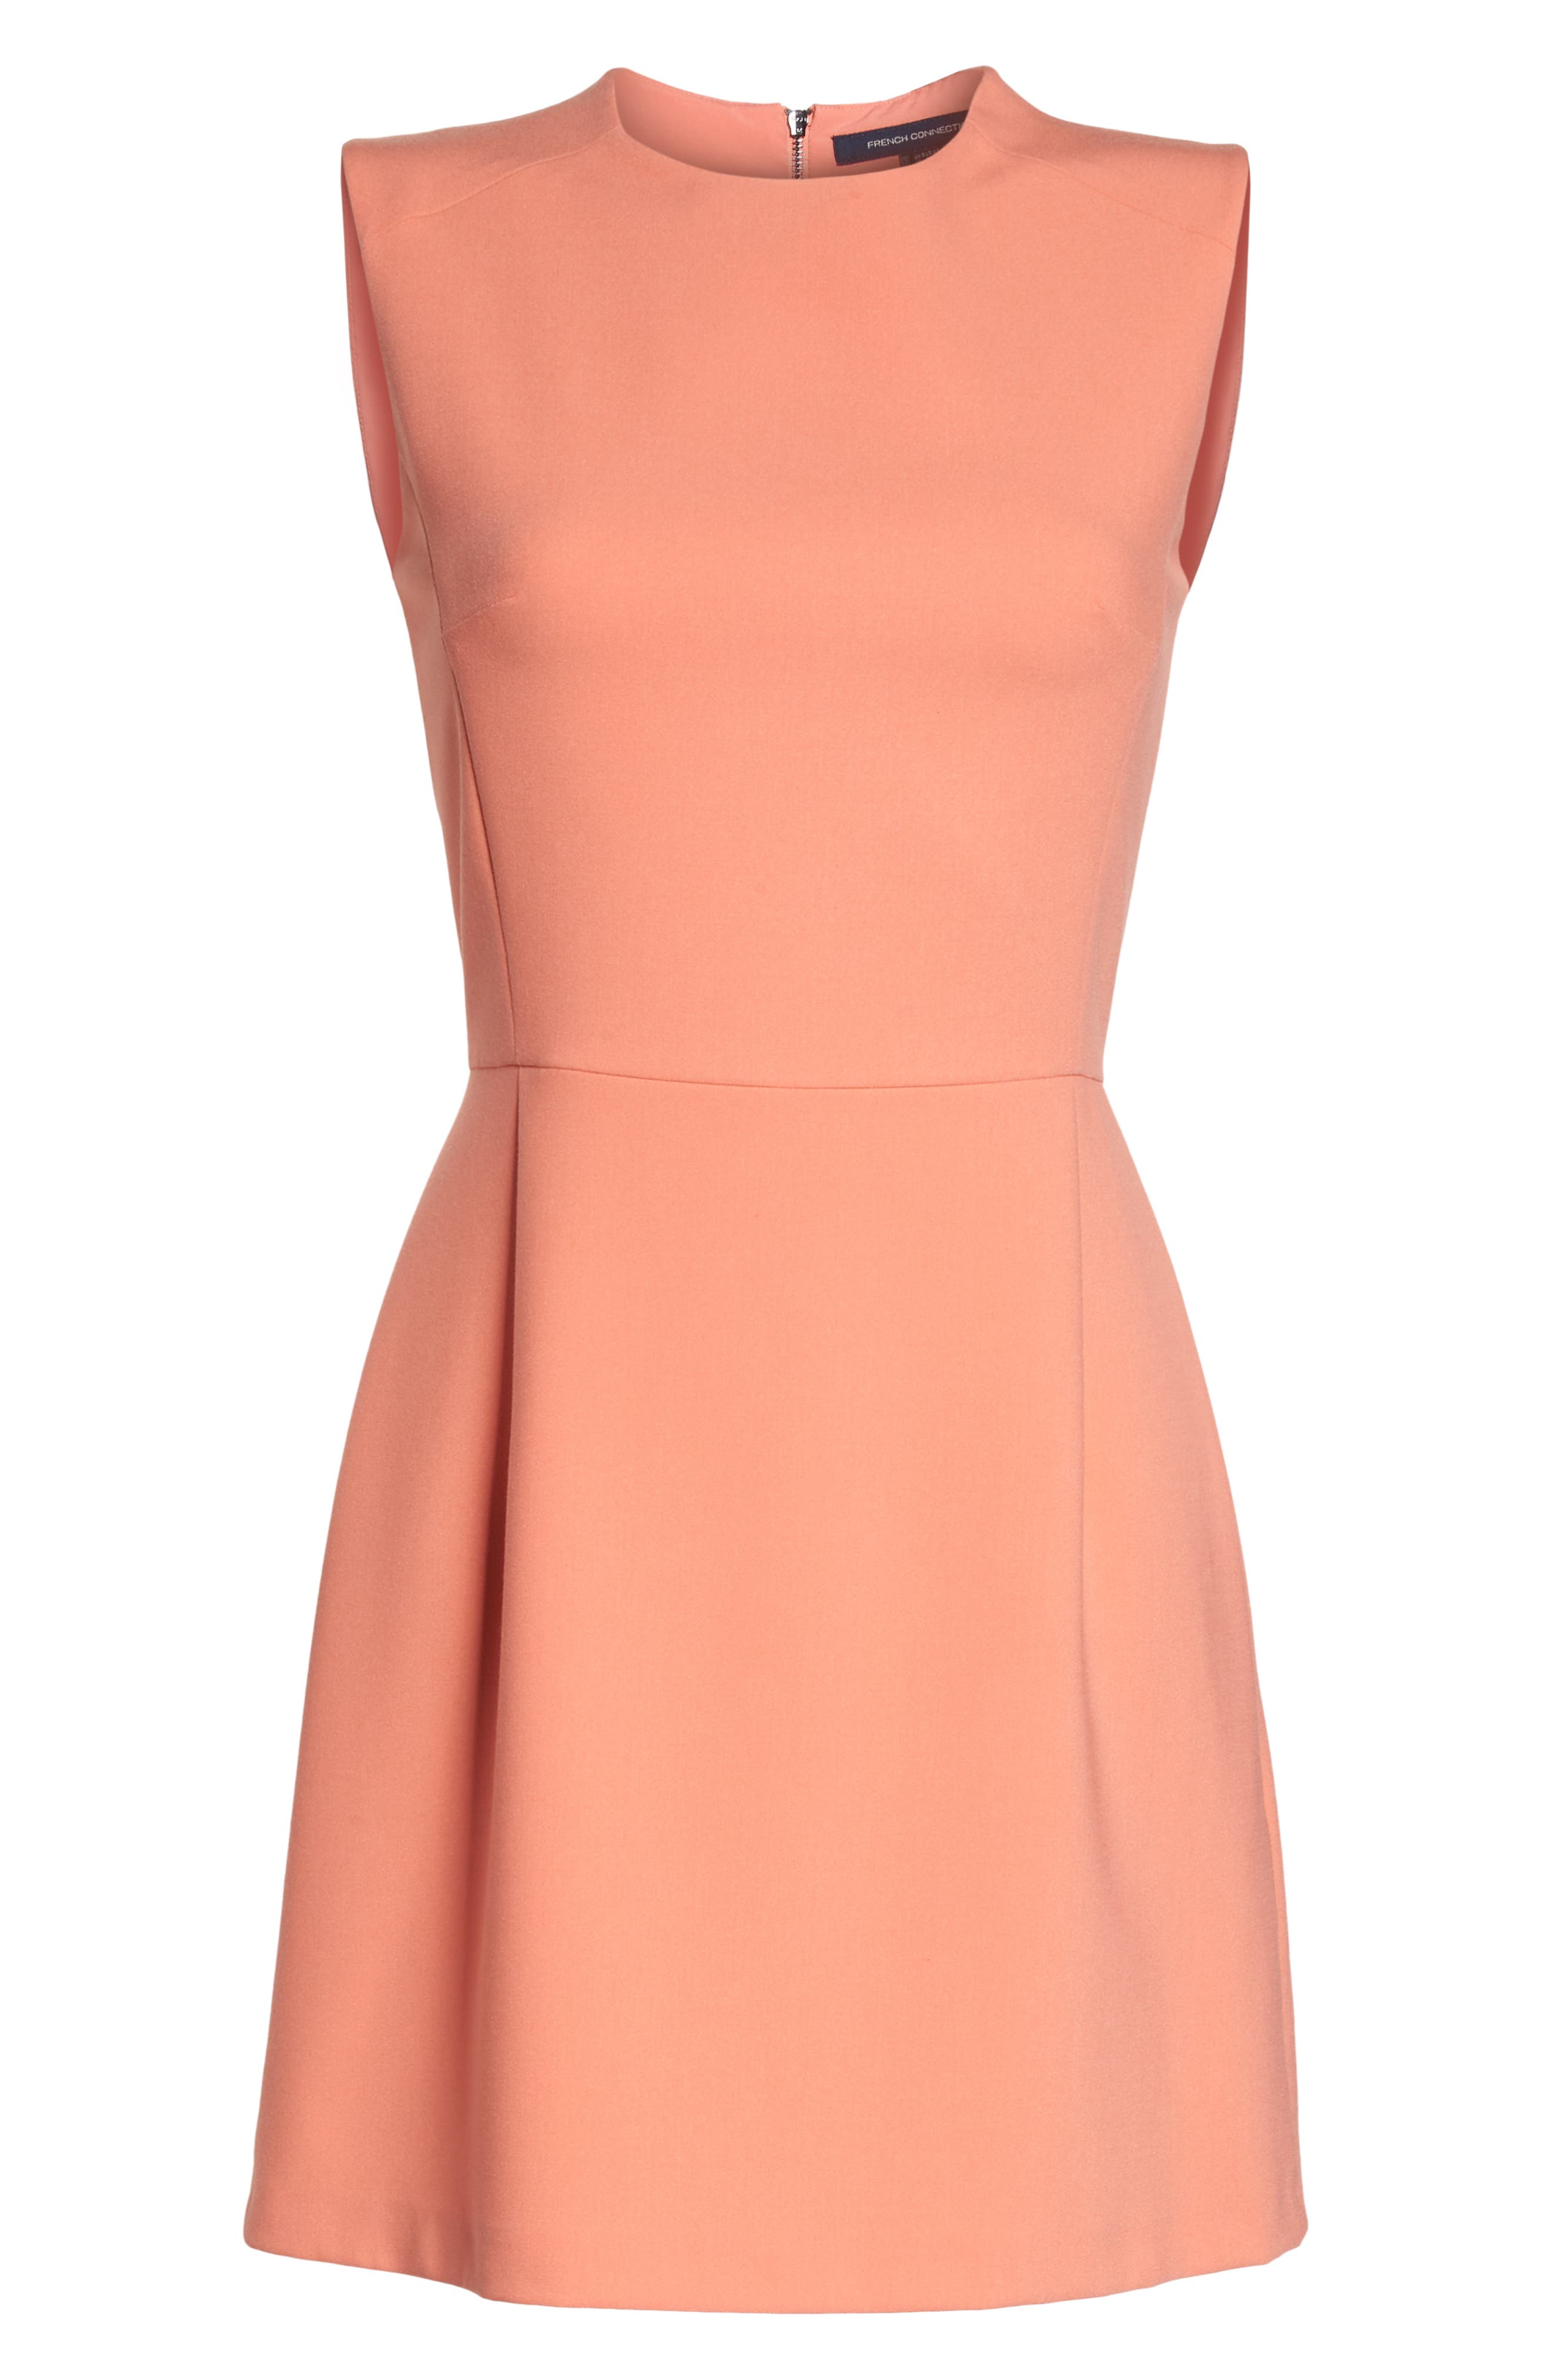 'Sundae' Stretch Minidress,                             Alternate thumbnail 7, color,                             CORAL SANDS